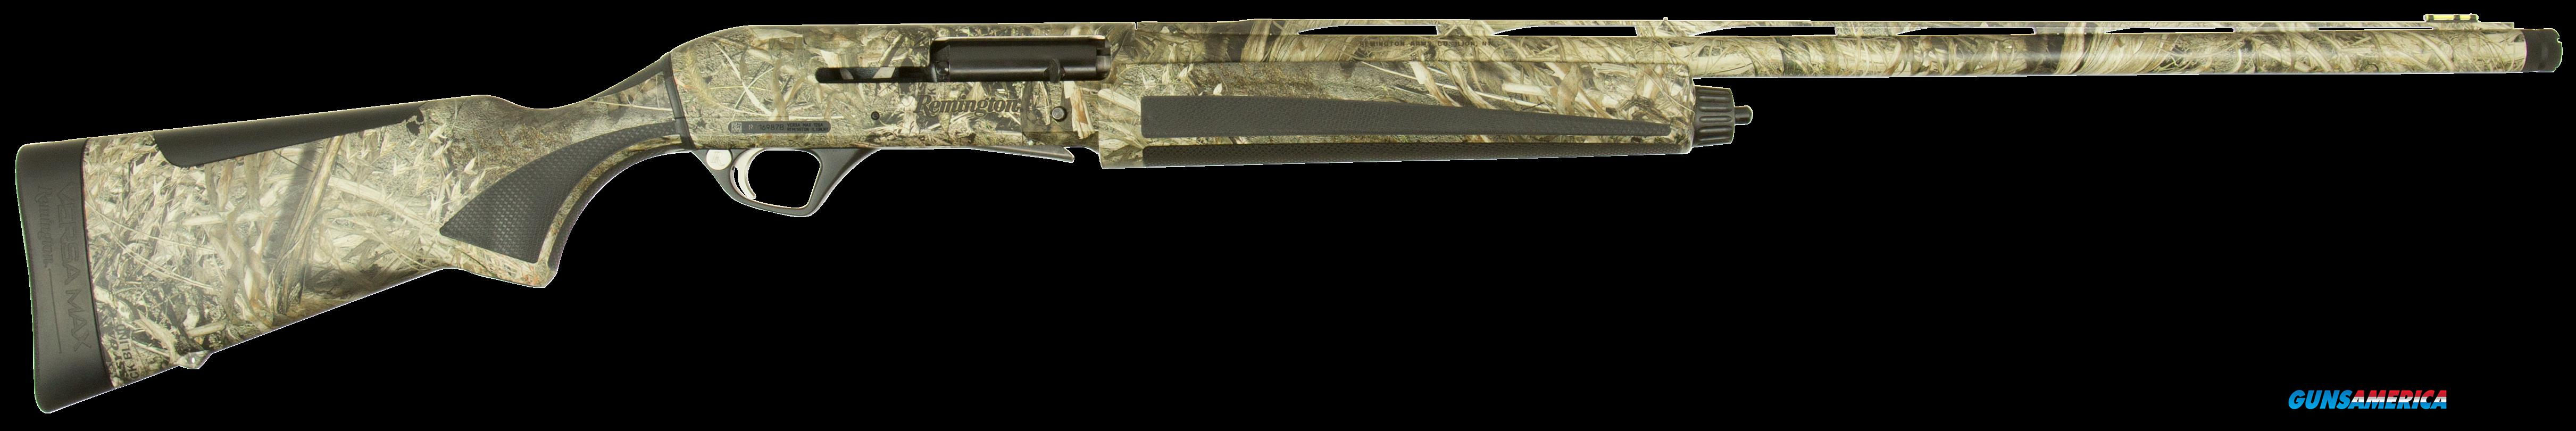 "Remington Firearms 83506 Versa Max Waterfowl Semi-Automatic 12 Gauge 28"" 3.5"" Mossy Oak Duck Blind  Guns > Shotguns > R Misc Shotguns"